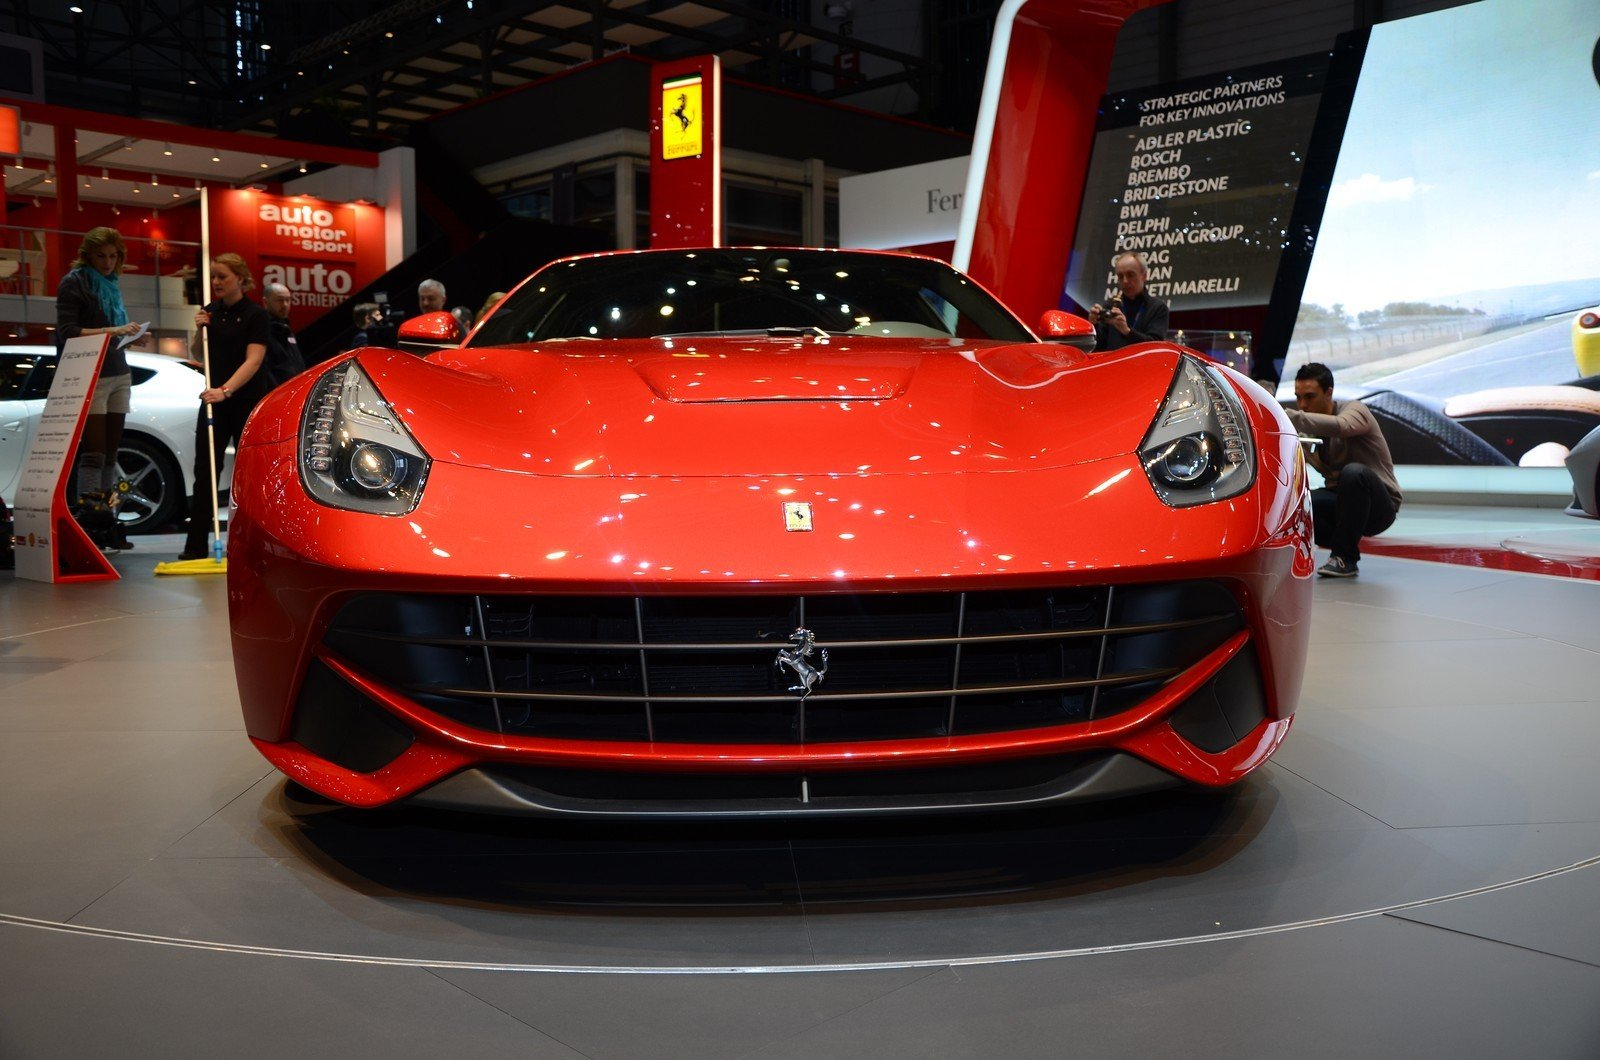 2013 ferrari f12 berlinetta picture 441824 car review top speed. Black Bedroom Furniture Sets. Home Design Ideas